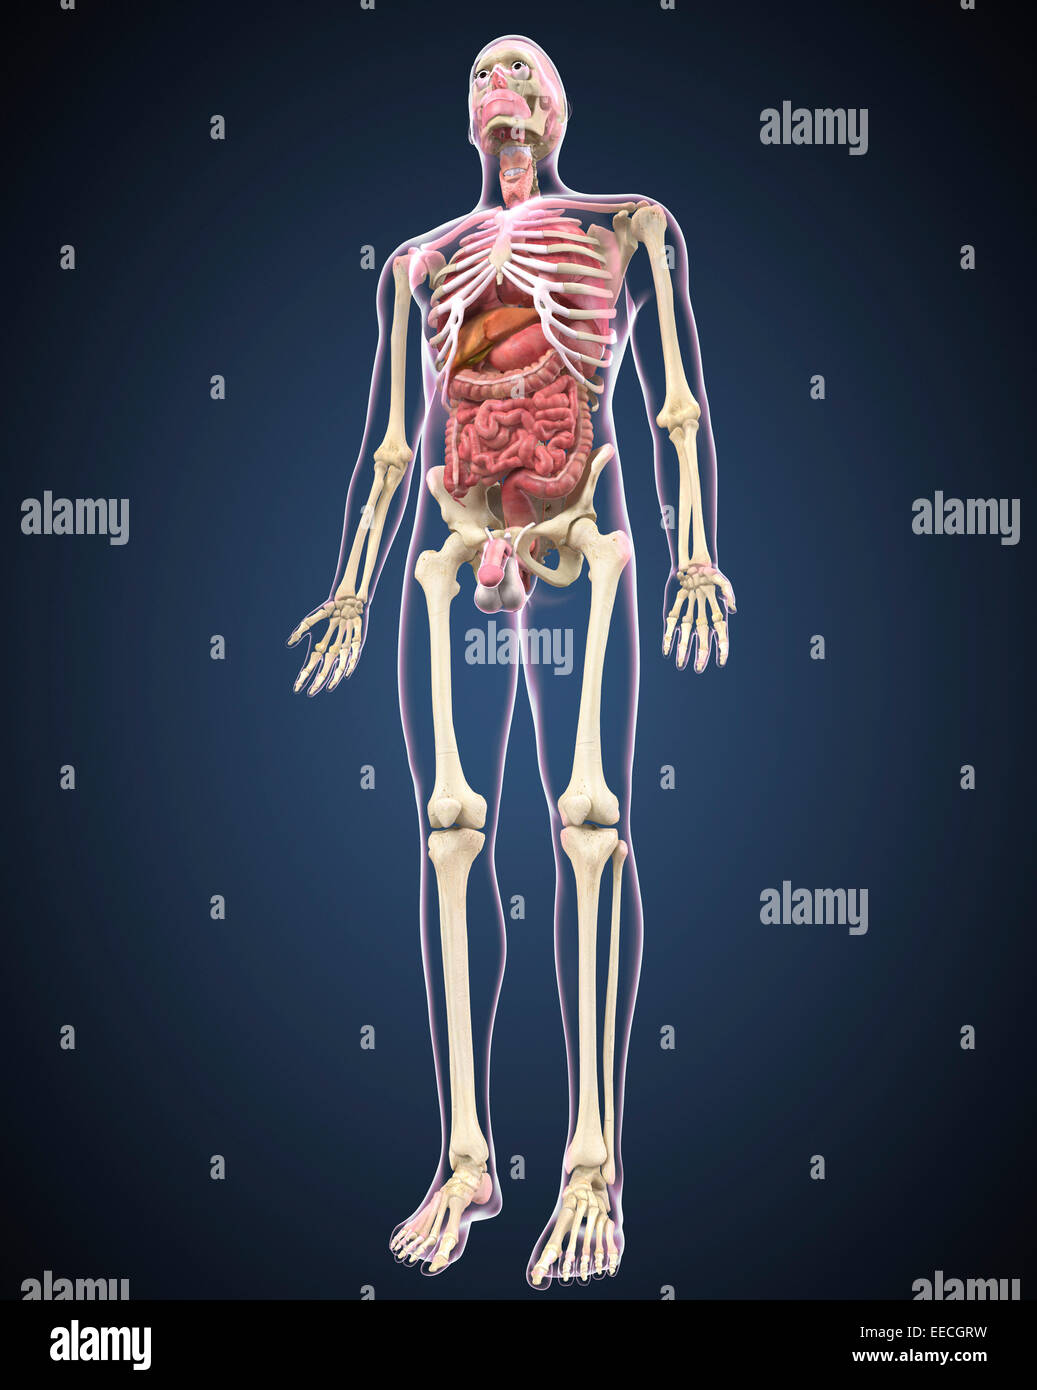 Full length view of male human body with organs. - Stock Image